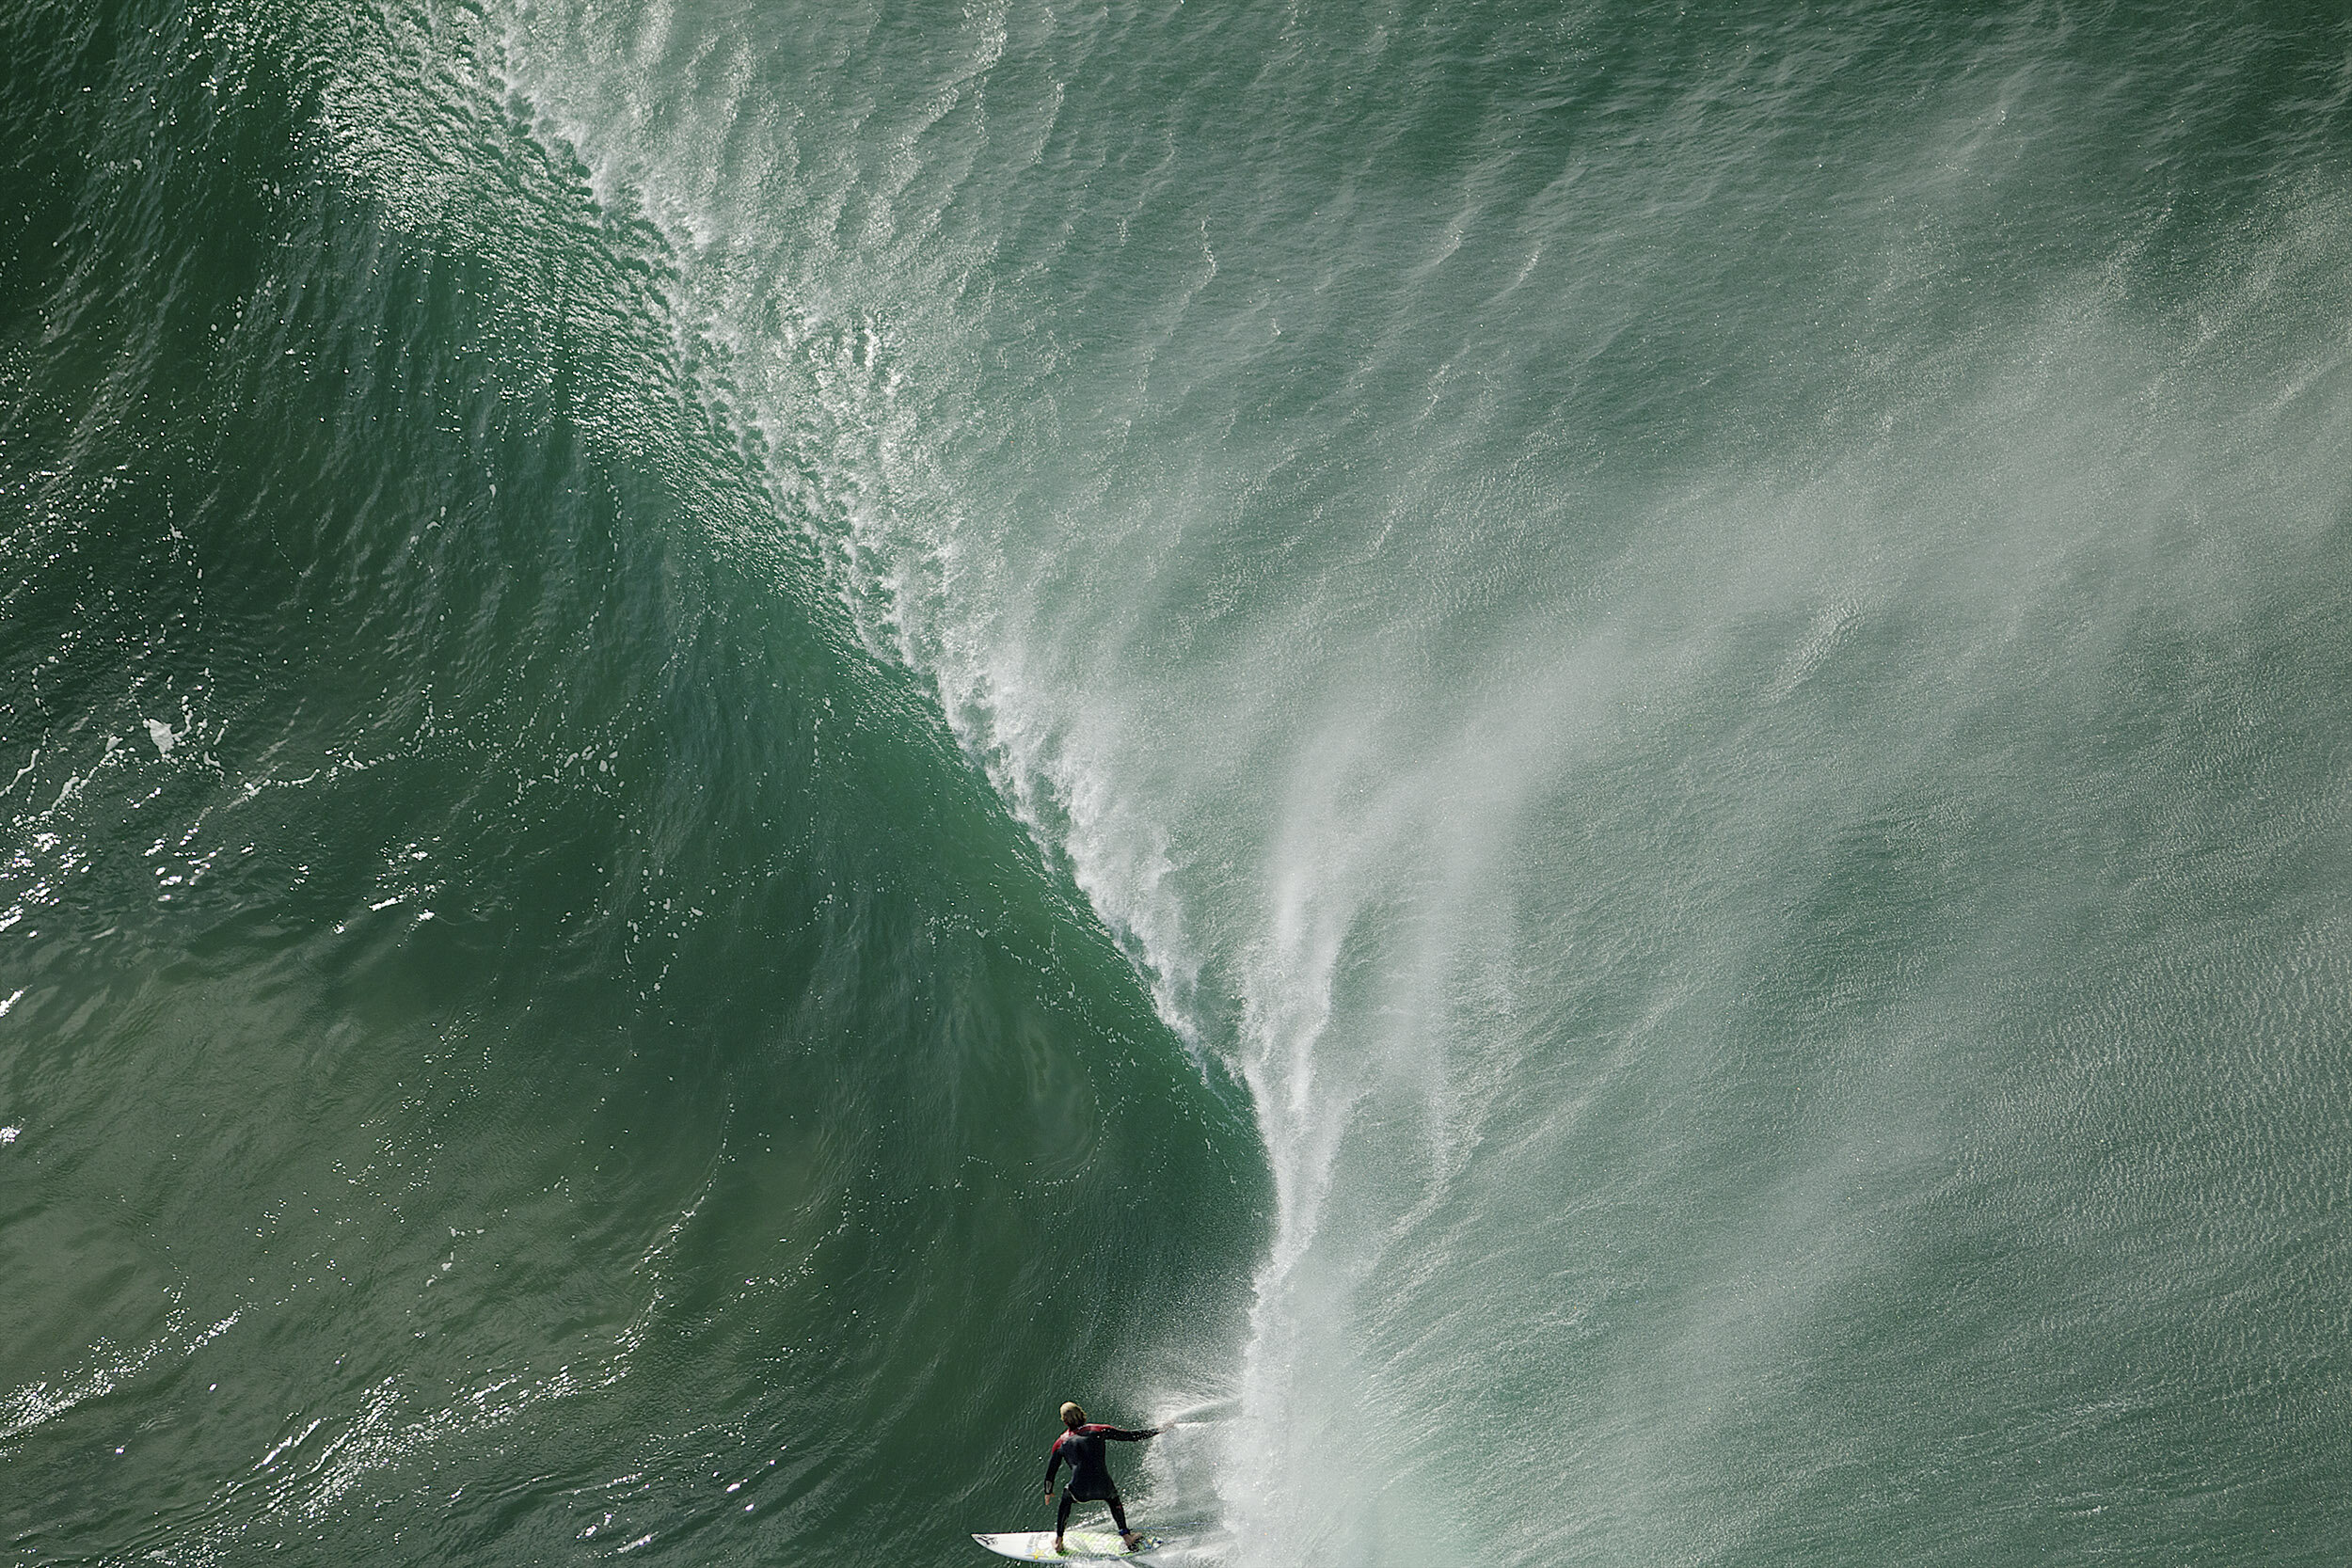 Ted Grambeau Surf photography